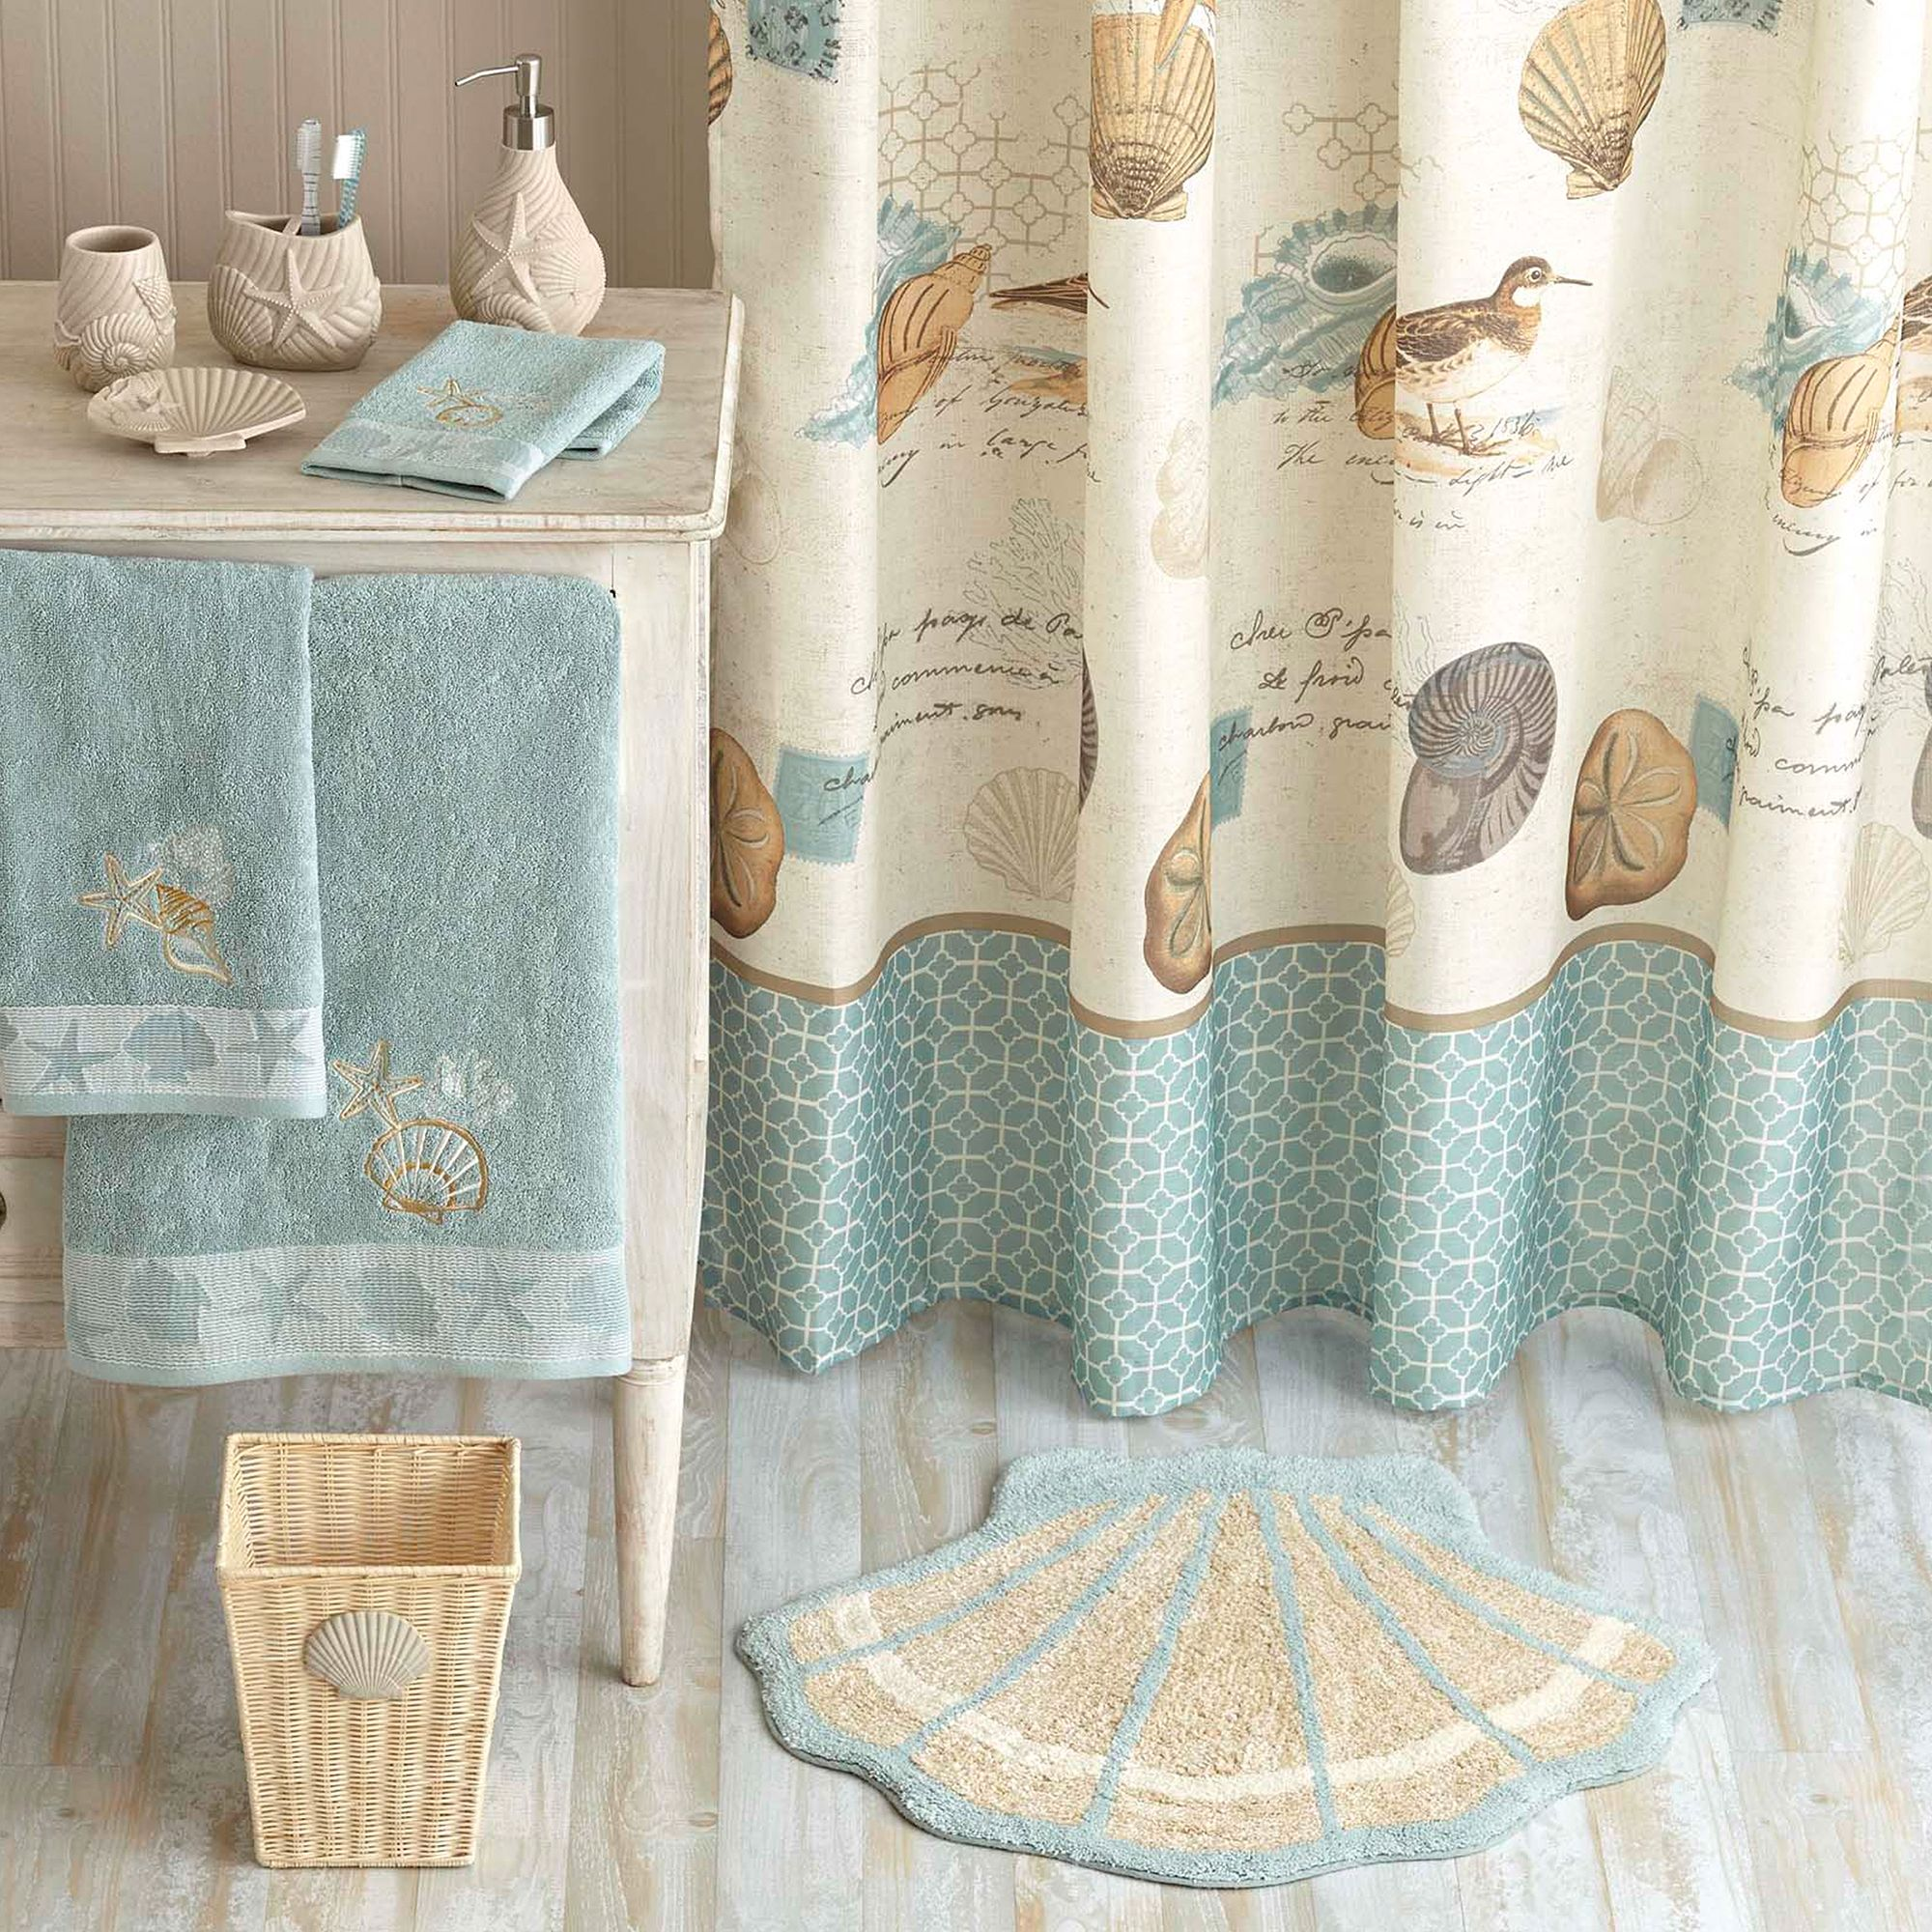 Bathroom Ocean Themed Fabric Shower Curtain Ideas Cheap Beach Curtains Better Homes And Gardens Seashell Bathroom Decor Beach Bathroom Decor Seashell Bathroom